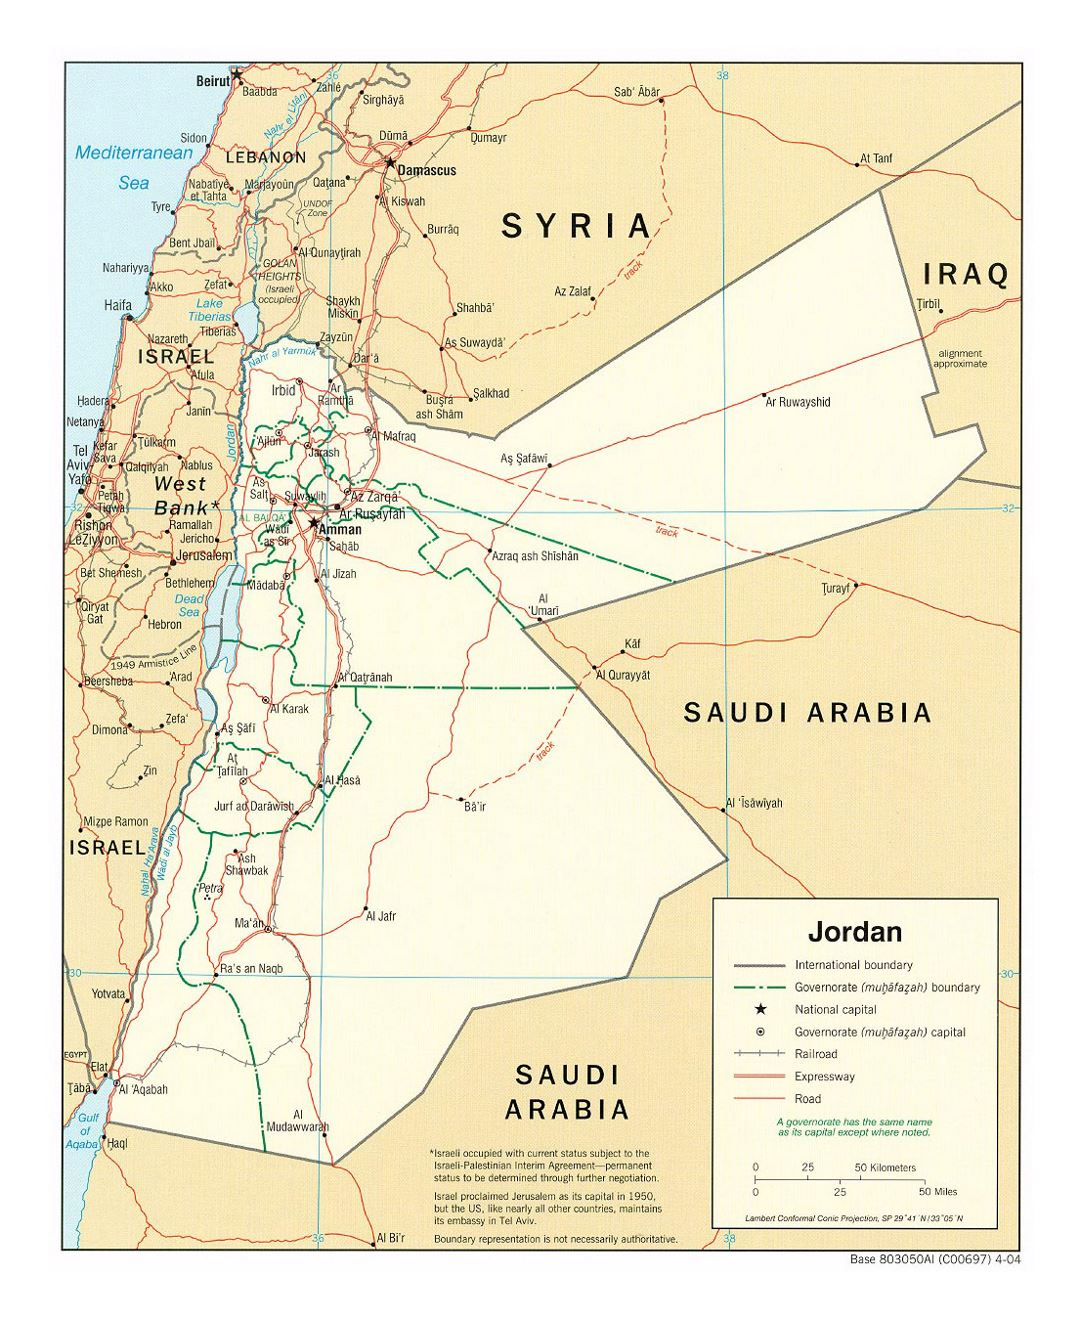 Detailed political and administrative map of Jordan with roads, railroads and major cities - 2004